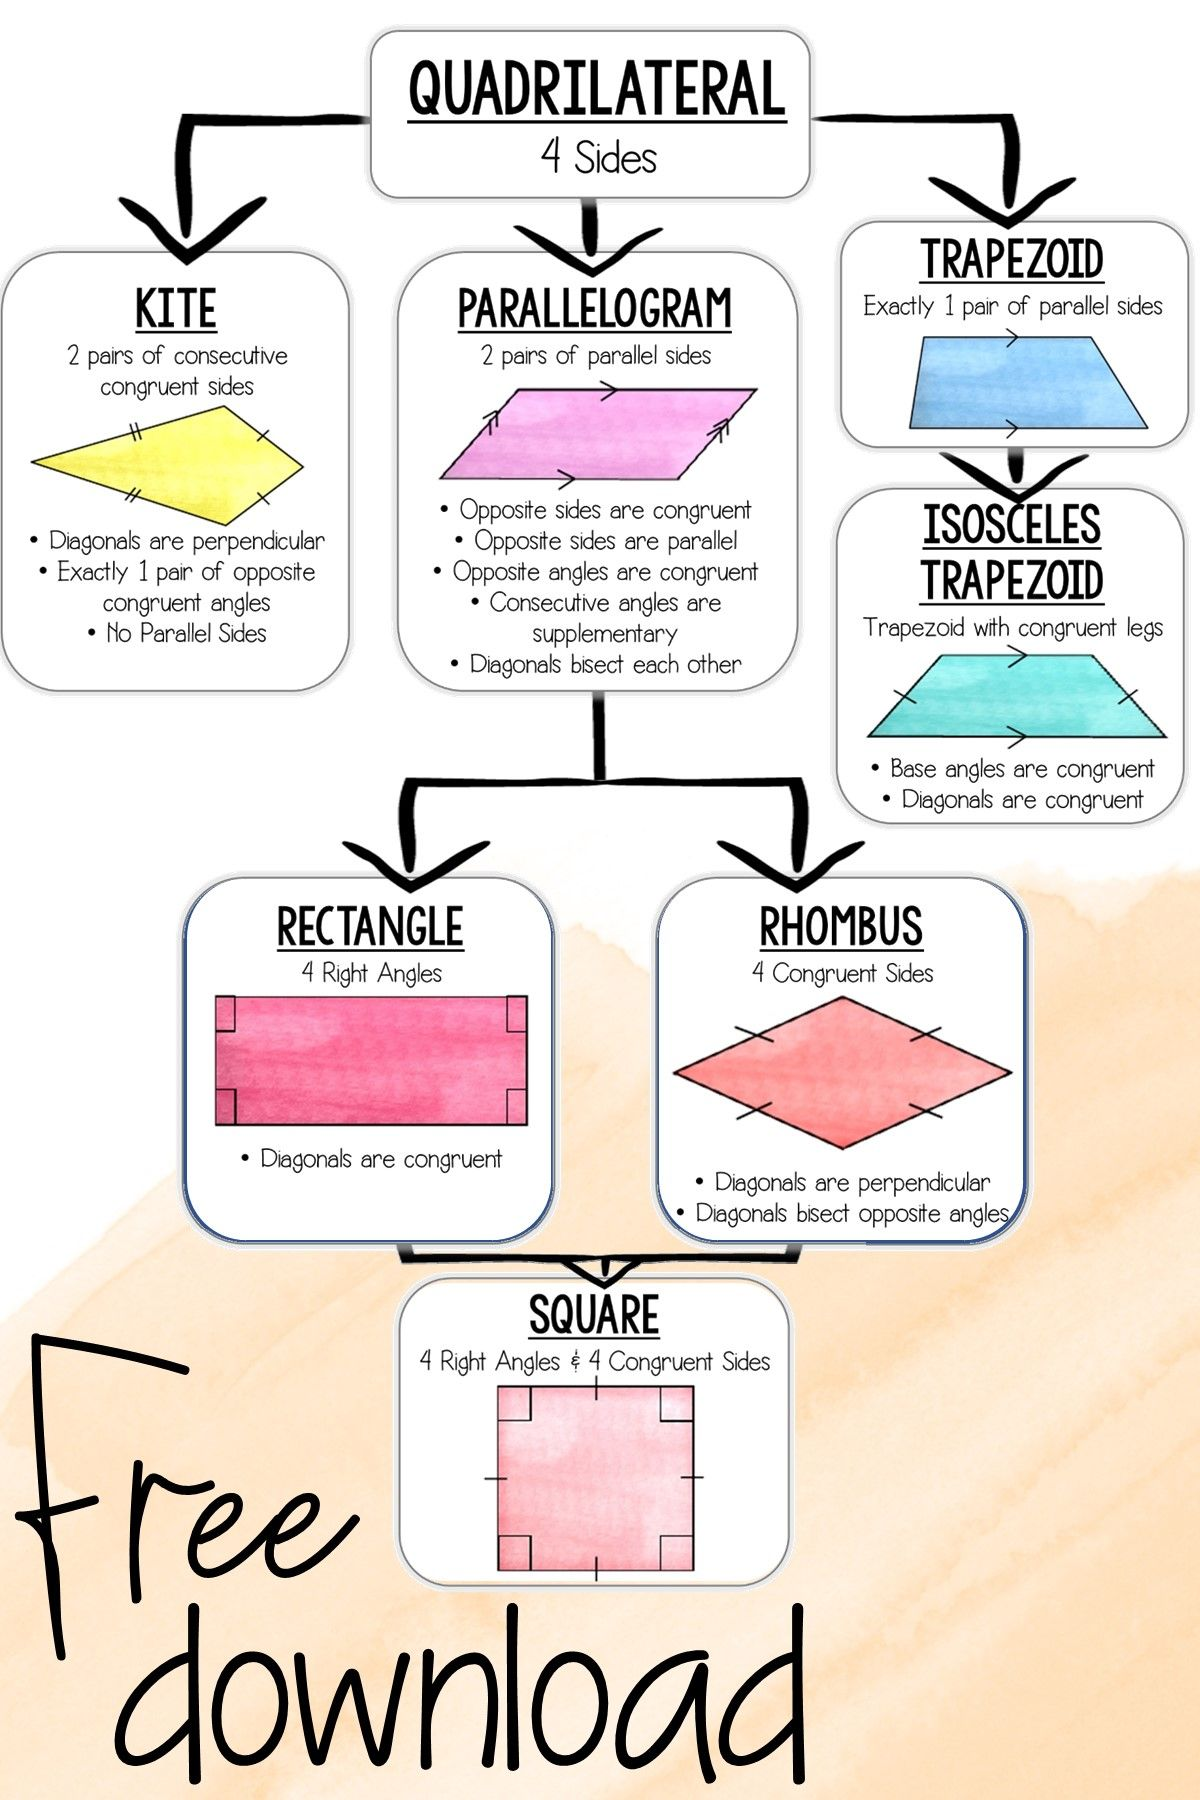 hight resolution of Quadrilateral Theorems and Classifying Quadrilaterals Anchor Chart / Poster    Quadrilaterals anchor chart